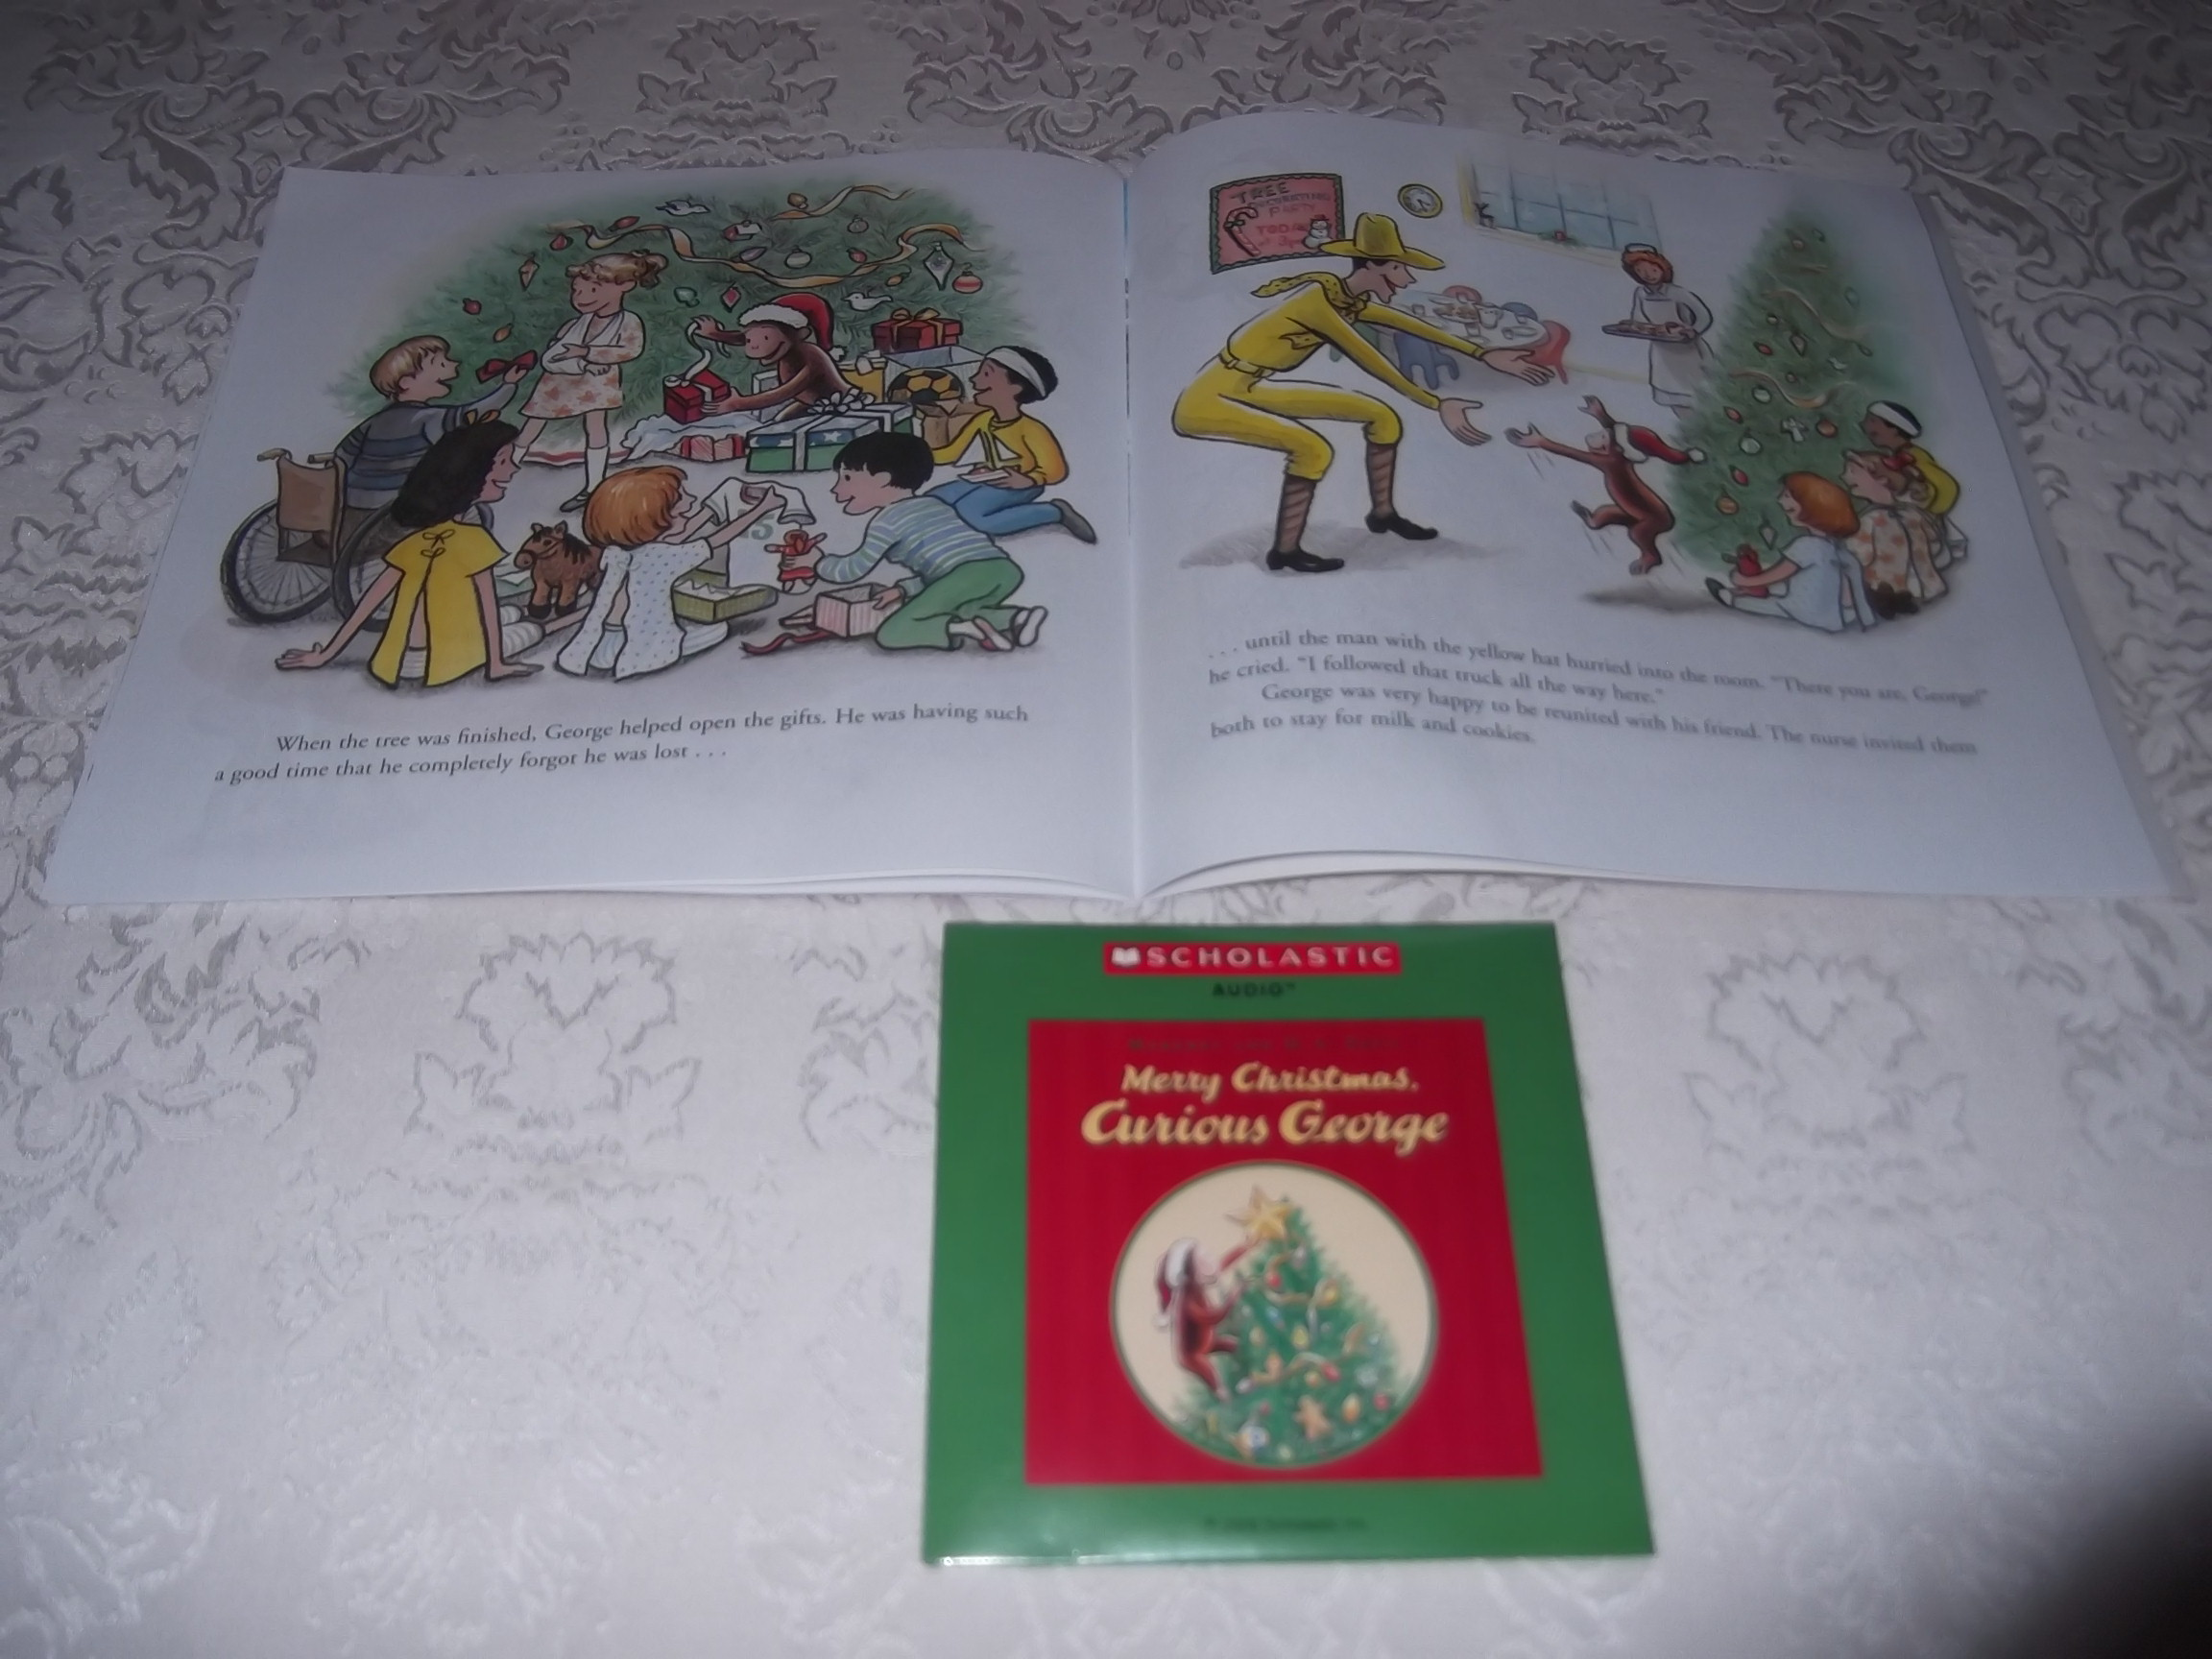 Image 6 of Merry Christmas, Curious George Margret and H.A. Rey Brand New Audio CD and SC